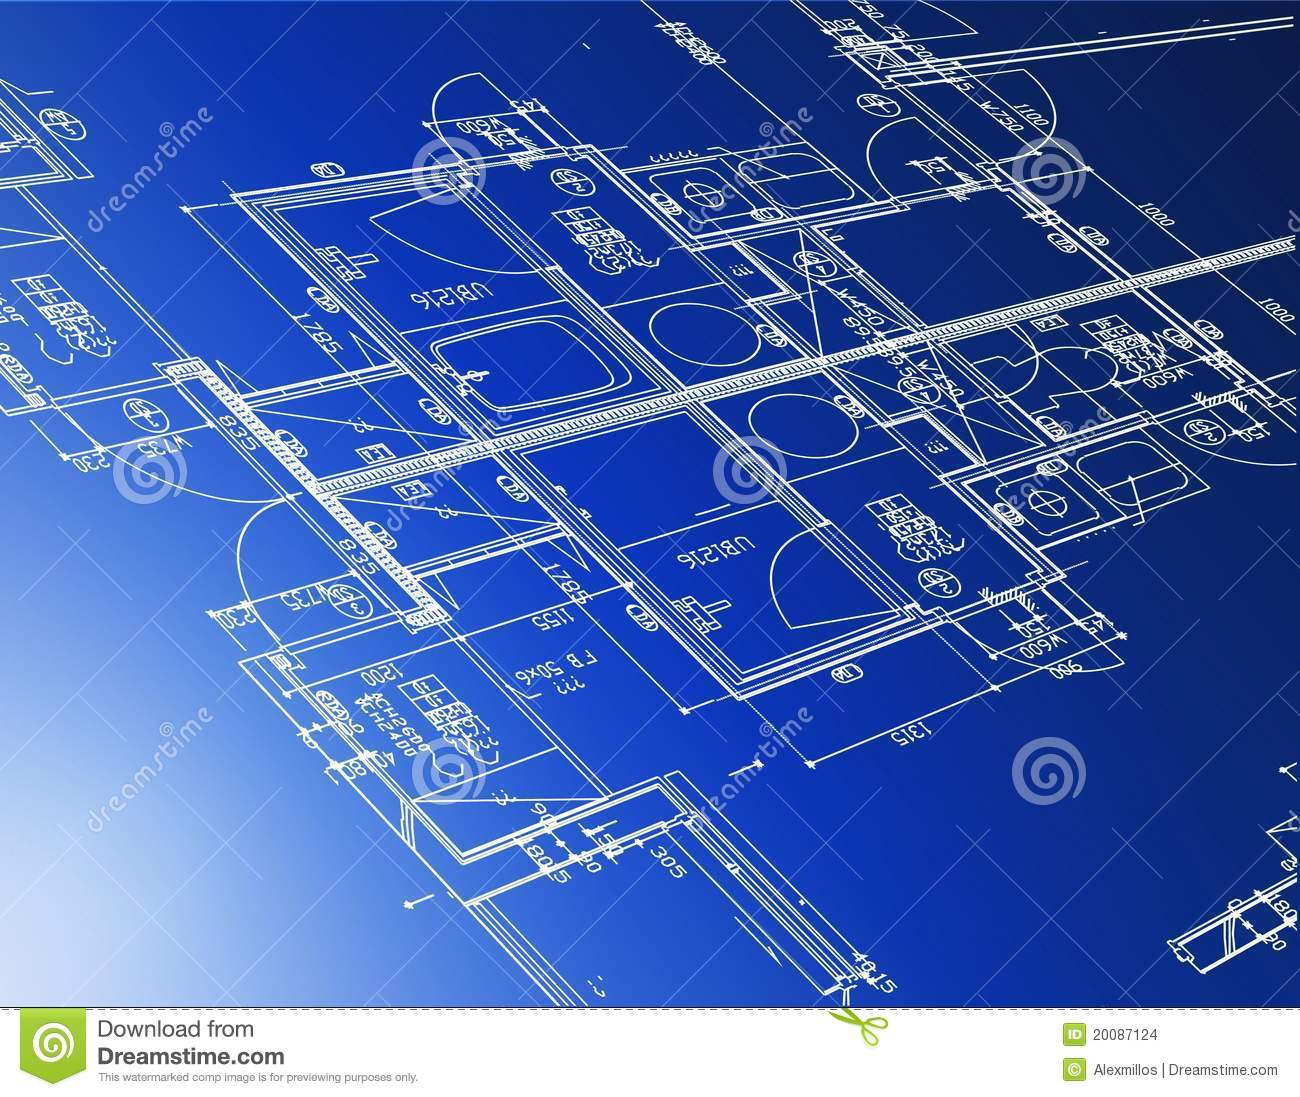 Architectural blueprints stock vector illustration of engineering architectural blueprints malvernweather Gallery